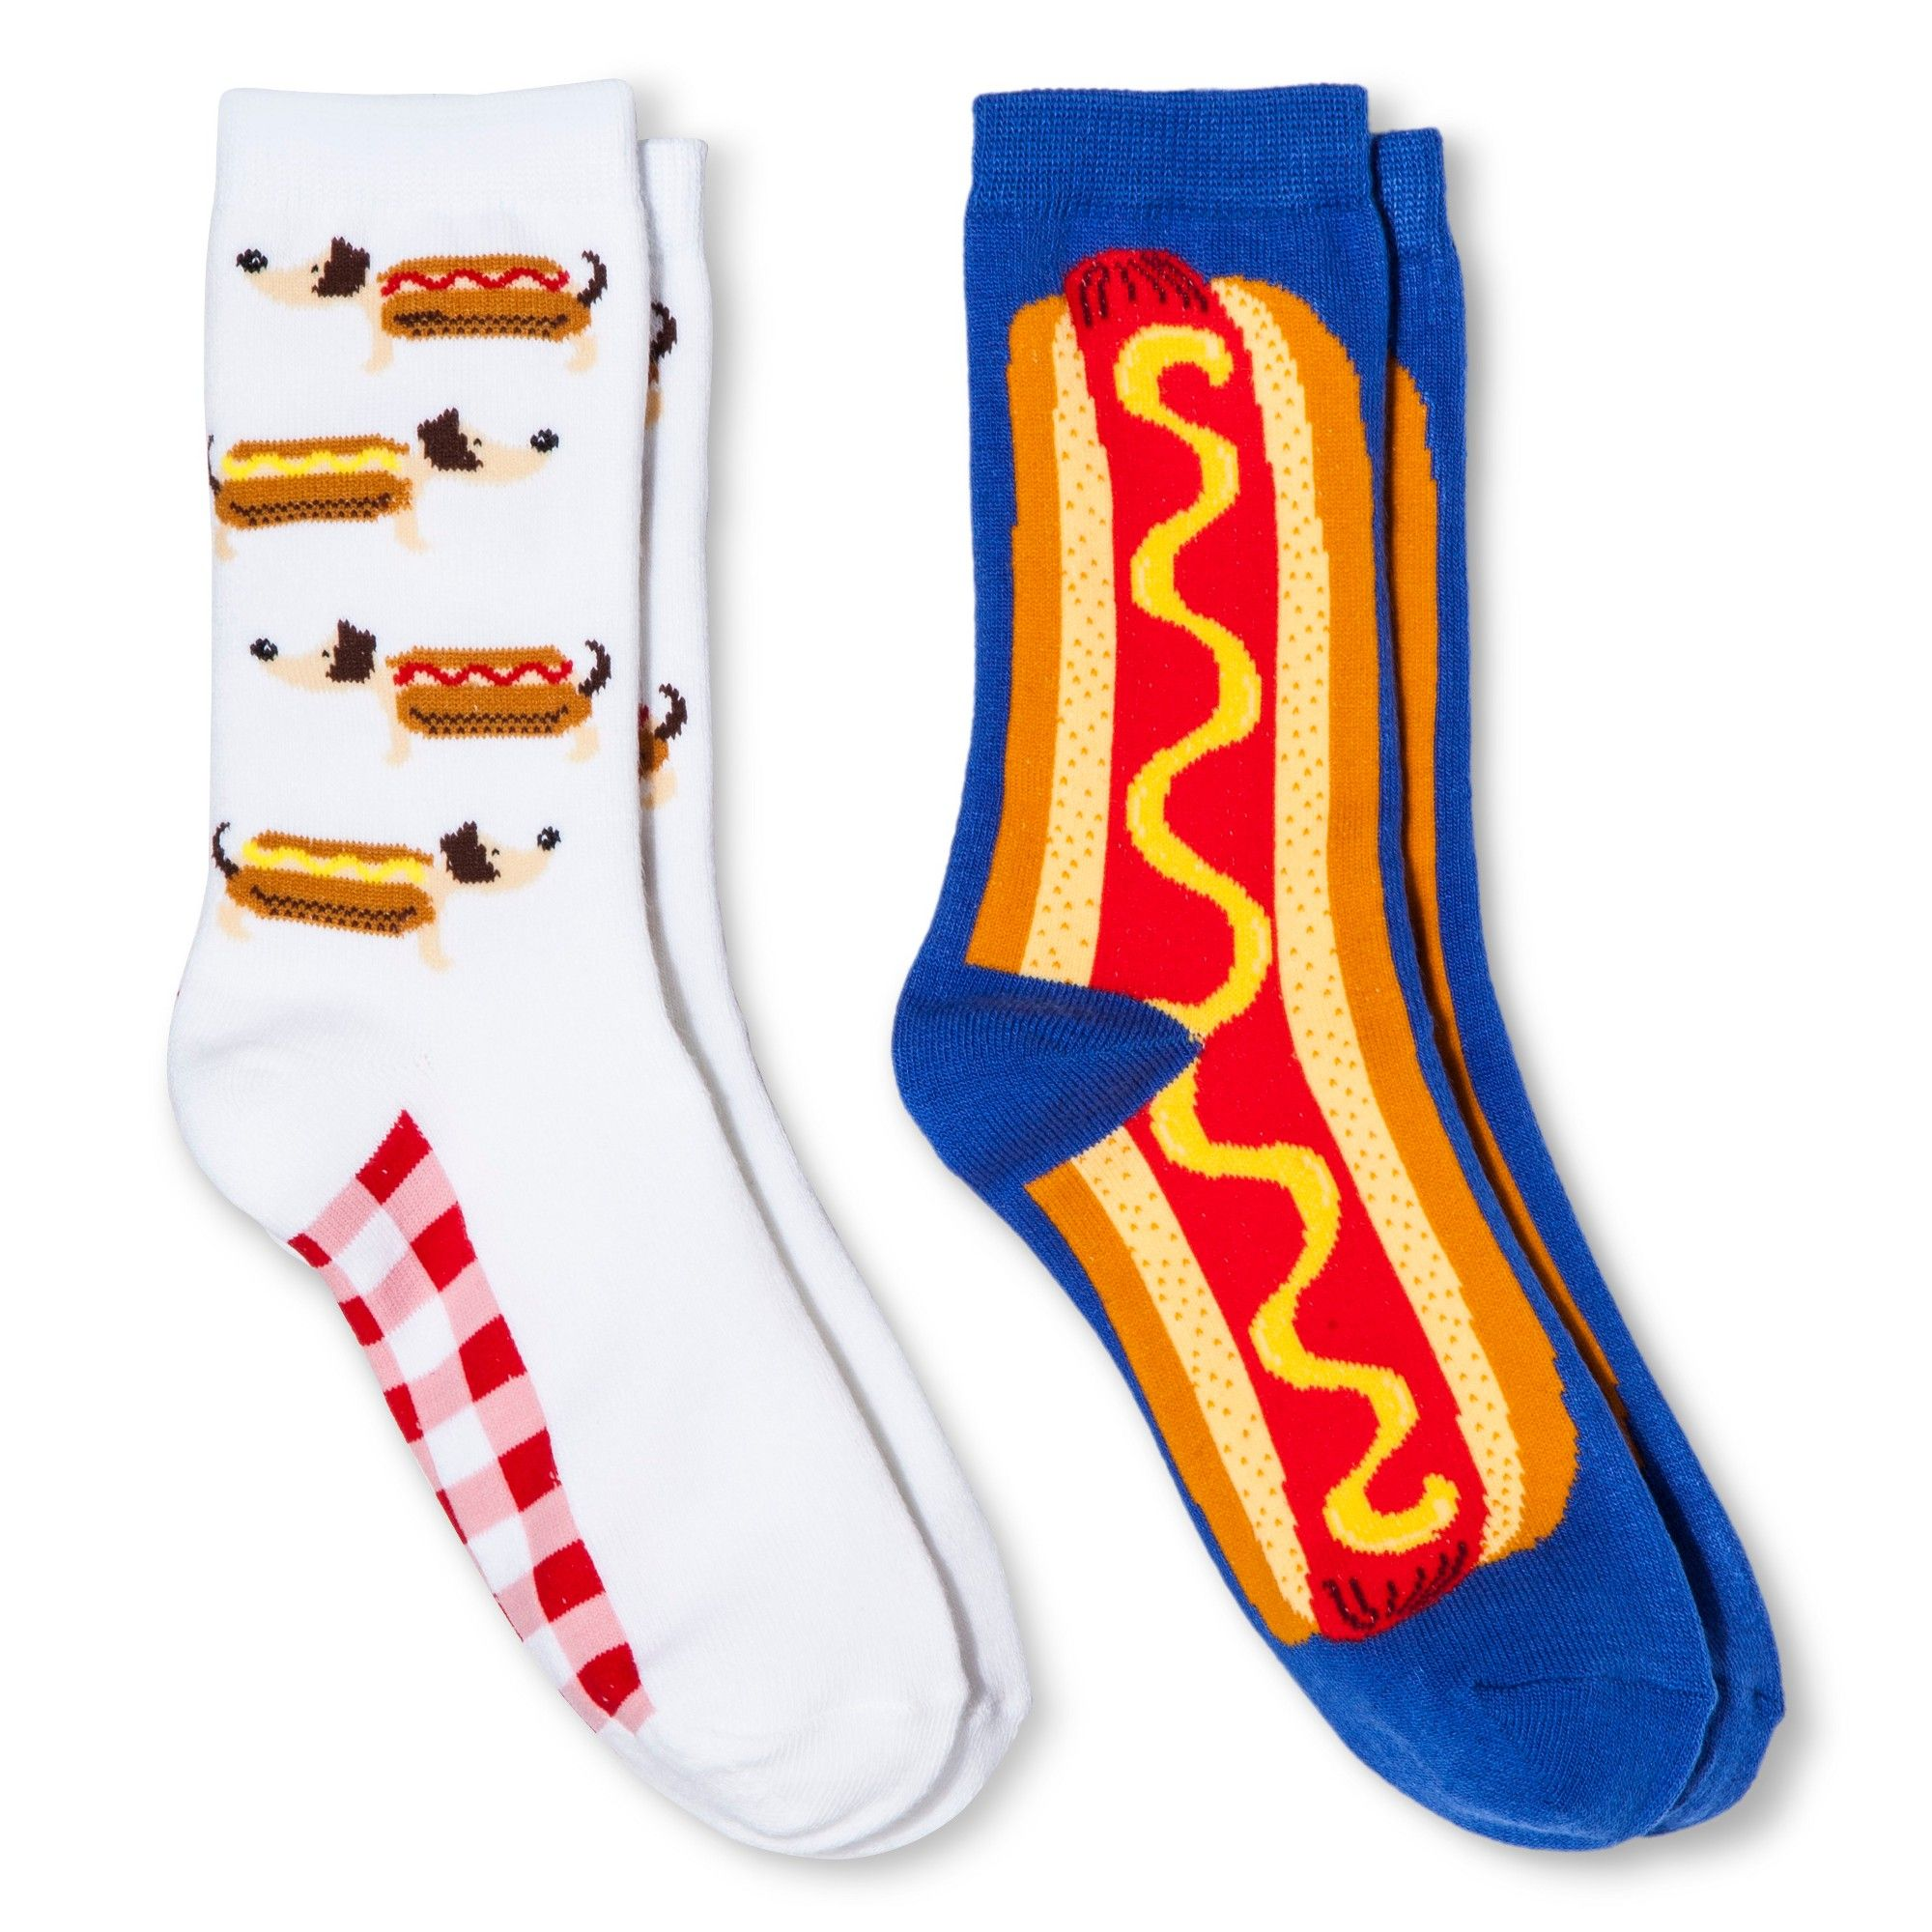 Davco Women\'s 2-Pack Fun Socks Hot Dogs/Big Hot Dog - White One Size ...